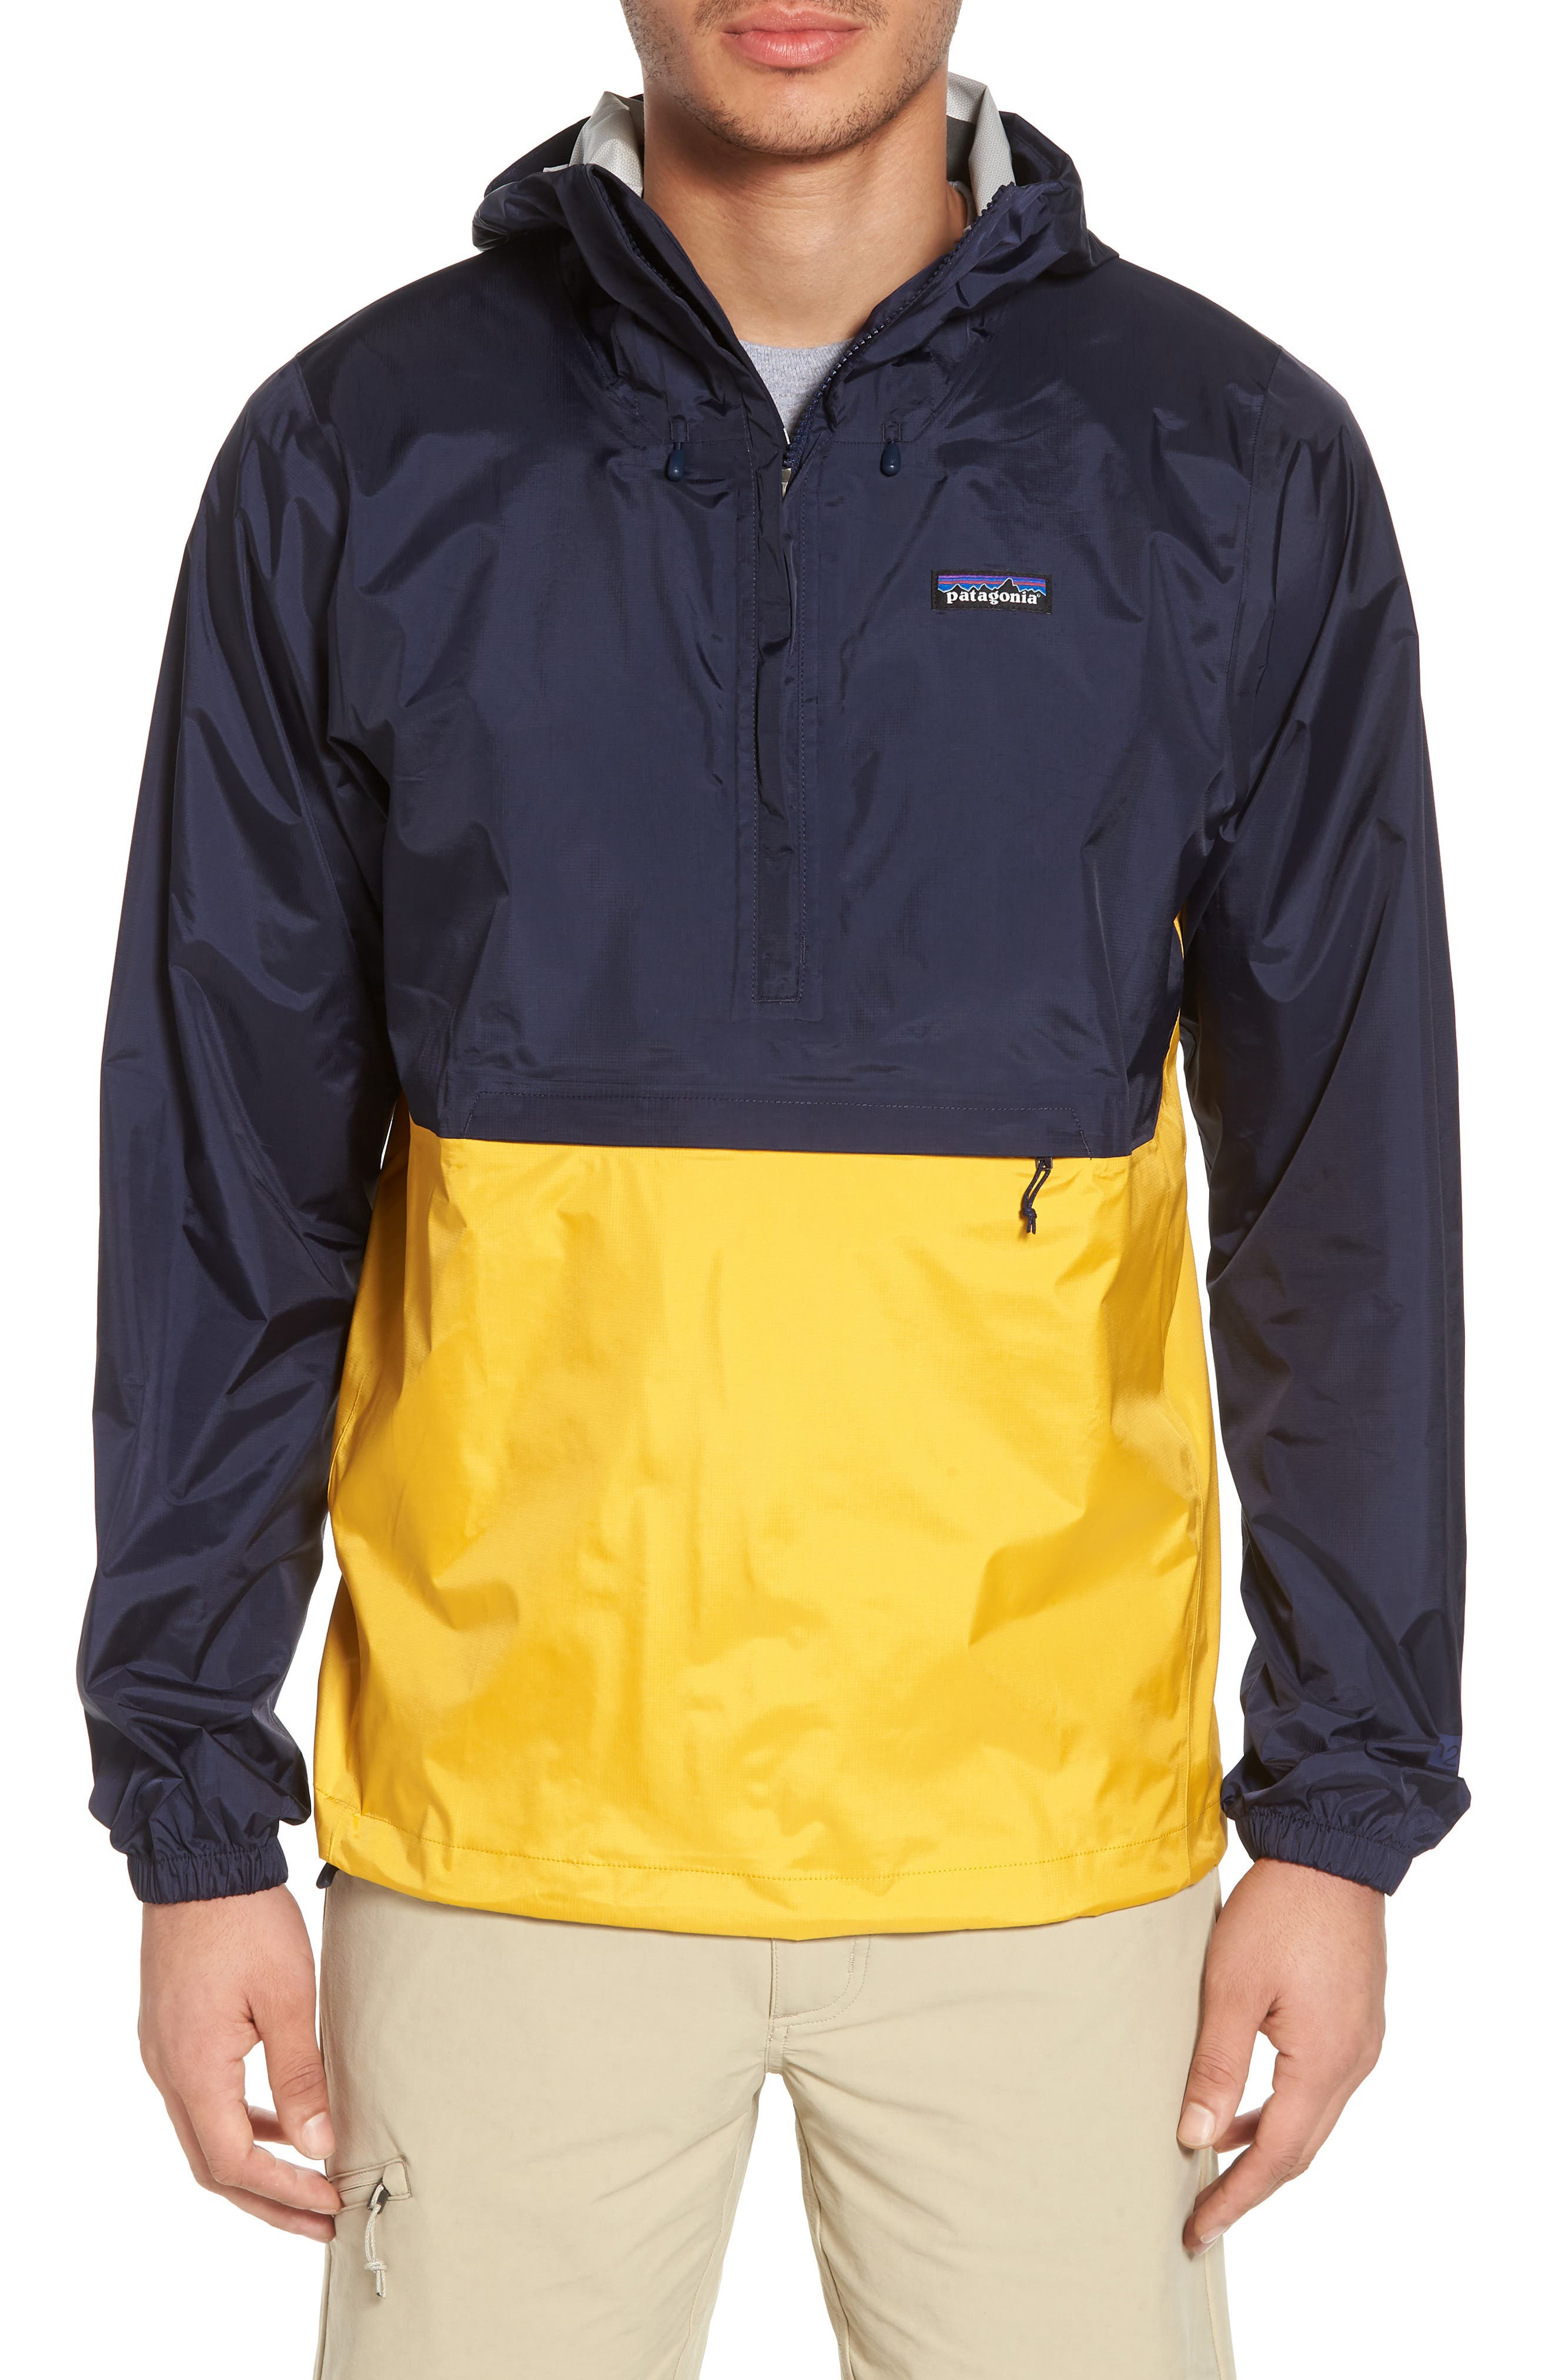 Torrentshell Packable Regular Fit Rain Jacket,                             Main thumbnail 1, color,                             Navy Blue W/ Rugby Yellow